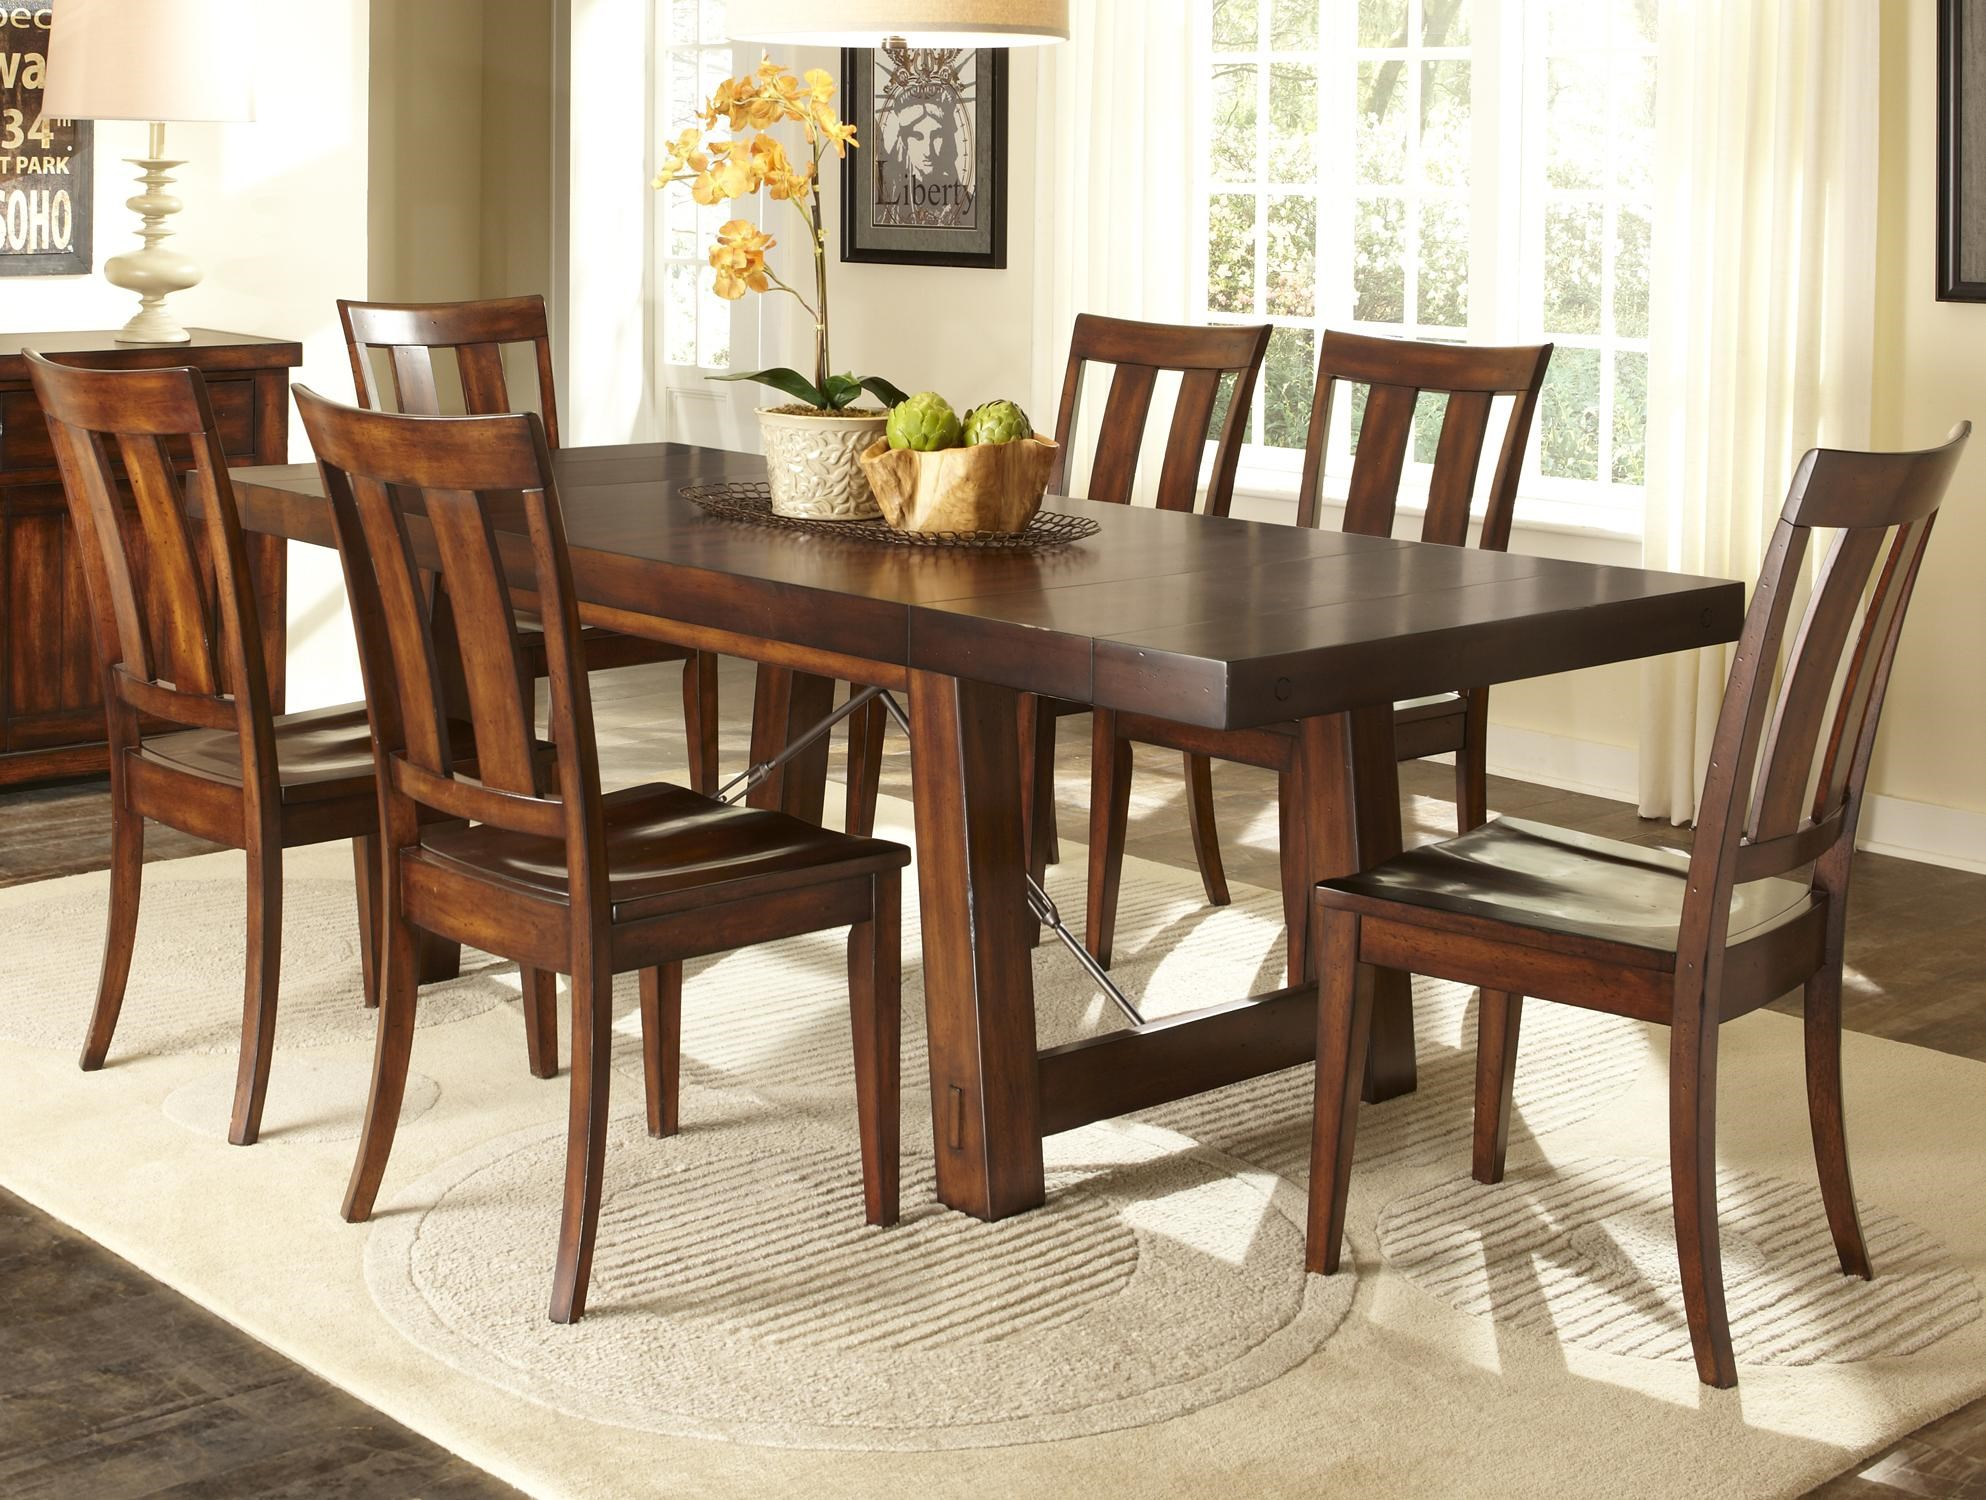 Genial Liberty Furniture Tahoe7 Piece Dining Table Set ...